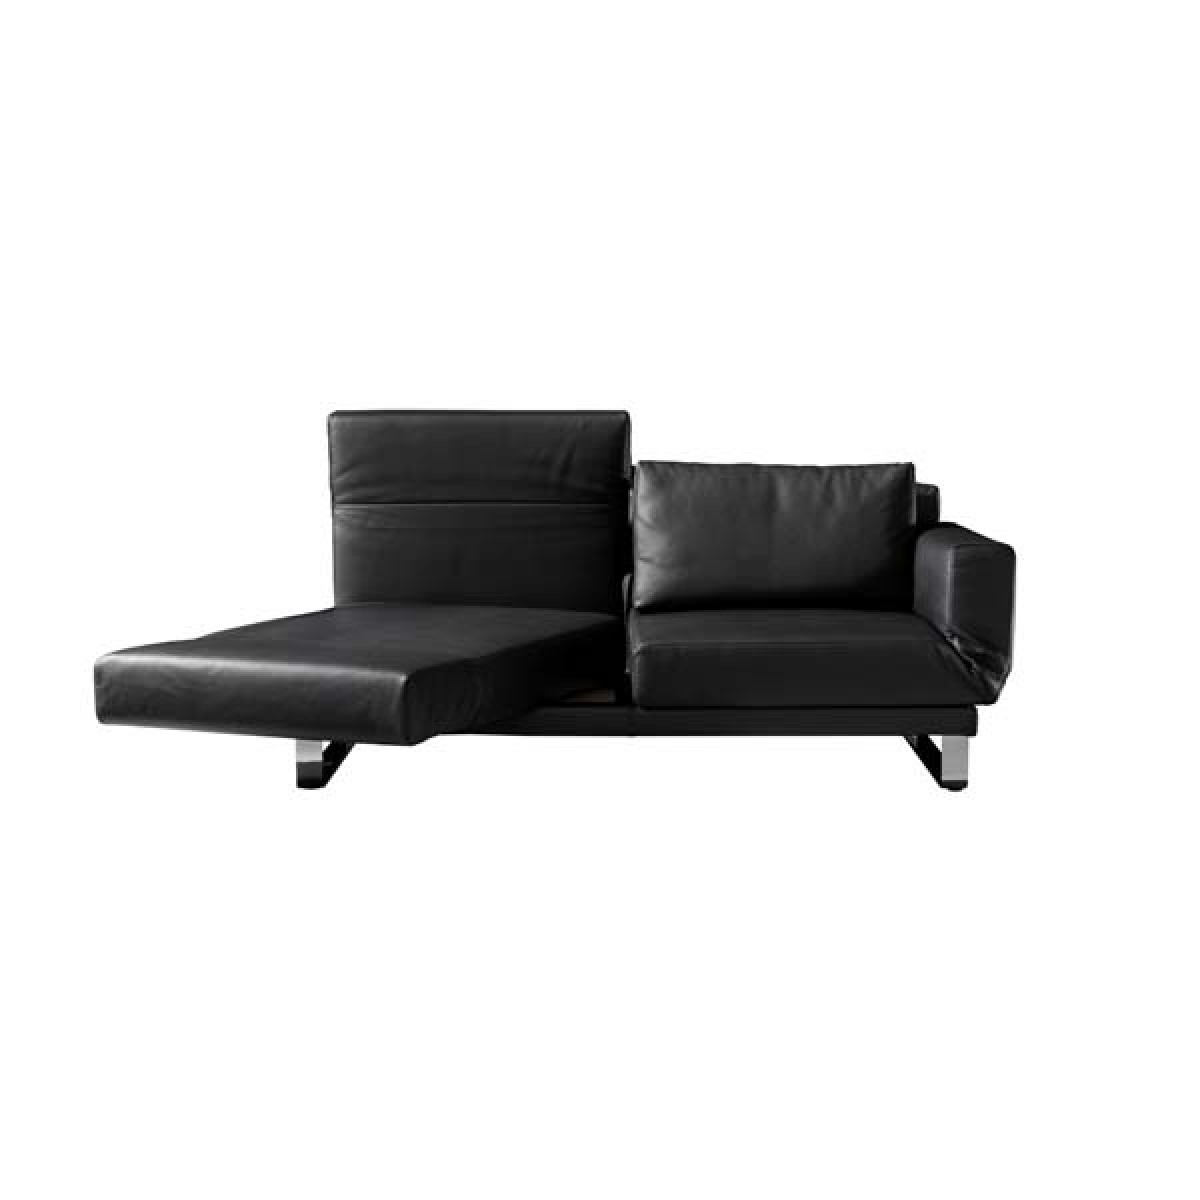 riga funktionssofa leder sofa m bel. Black Bedroom Furniture Sets. Home Design Ideas